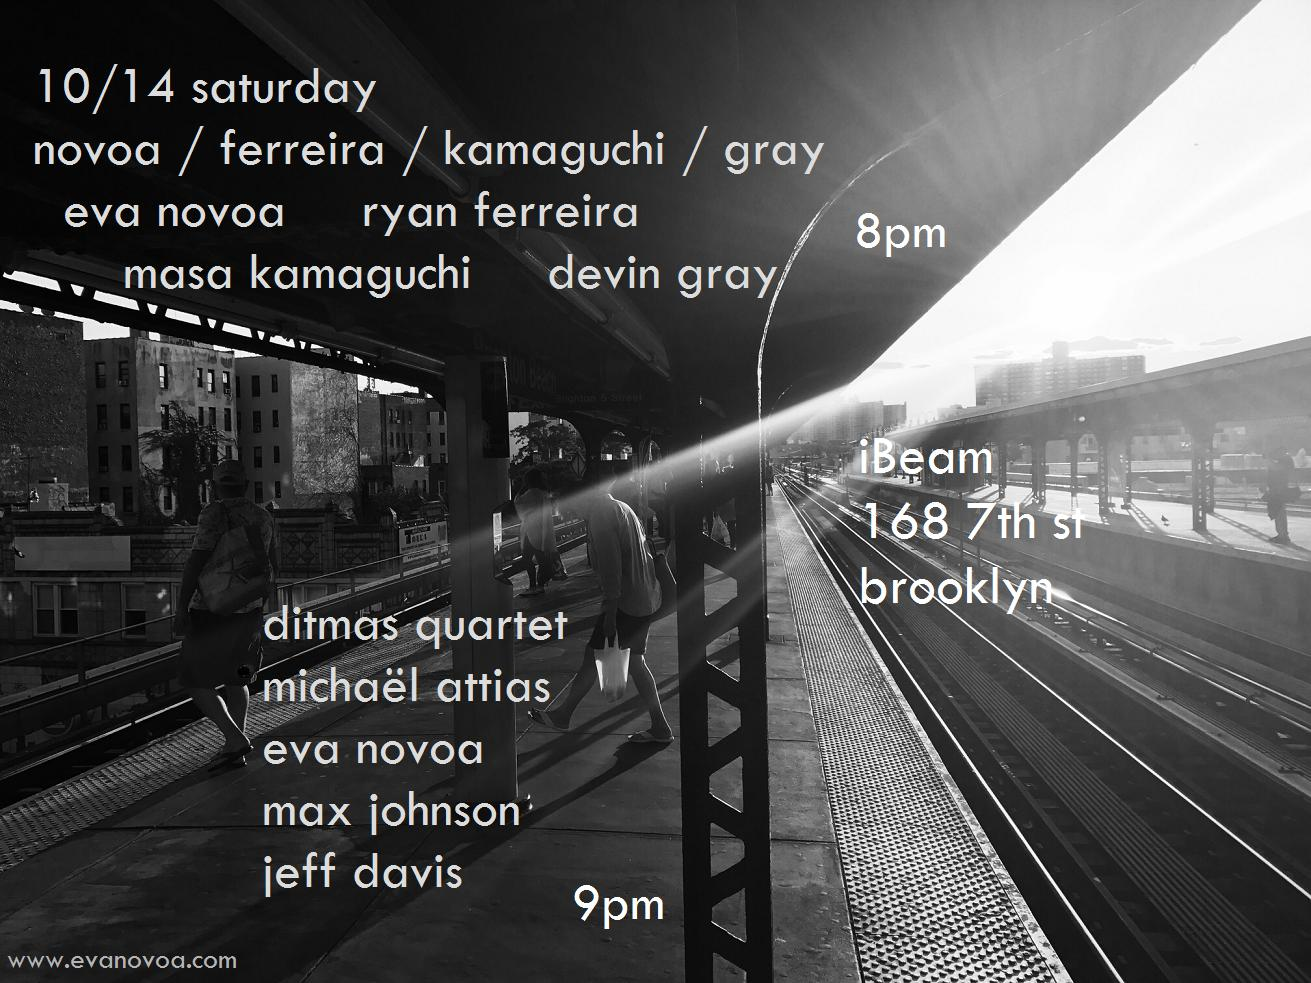 really excited to play this great double bill!!  10/14 Saturday Novoa / Ferreira / Kamaguchi / Gray Eva Novoa, piano   Ryan Ferreira, guitar & effects Masa Kamaguchi, bass    Devin Gray, drums 8pm     Ditmas Quartet   Michaël Attias, alto sax   Eva Novoa, piano Max Johnson, bass    Jeff Davis, drums 9pm     $15    Ibeam Brooklyn     Please join us and support live music! (plus it is my birthday so you cannot miss this) No beer - 100% MUSIC